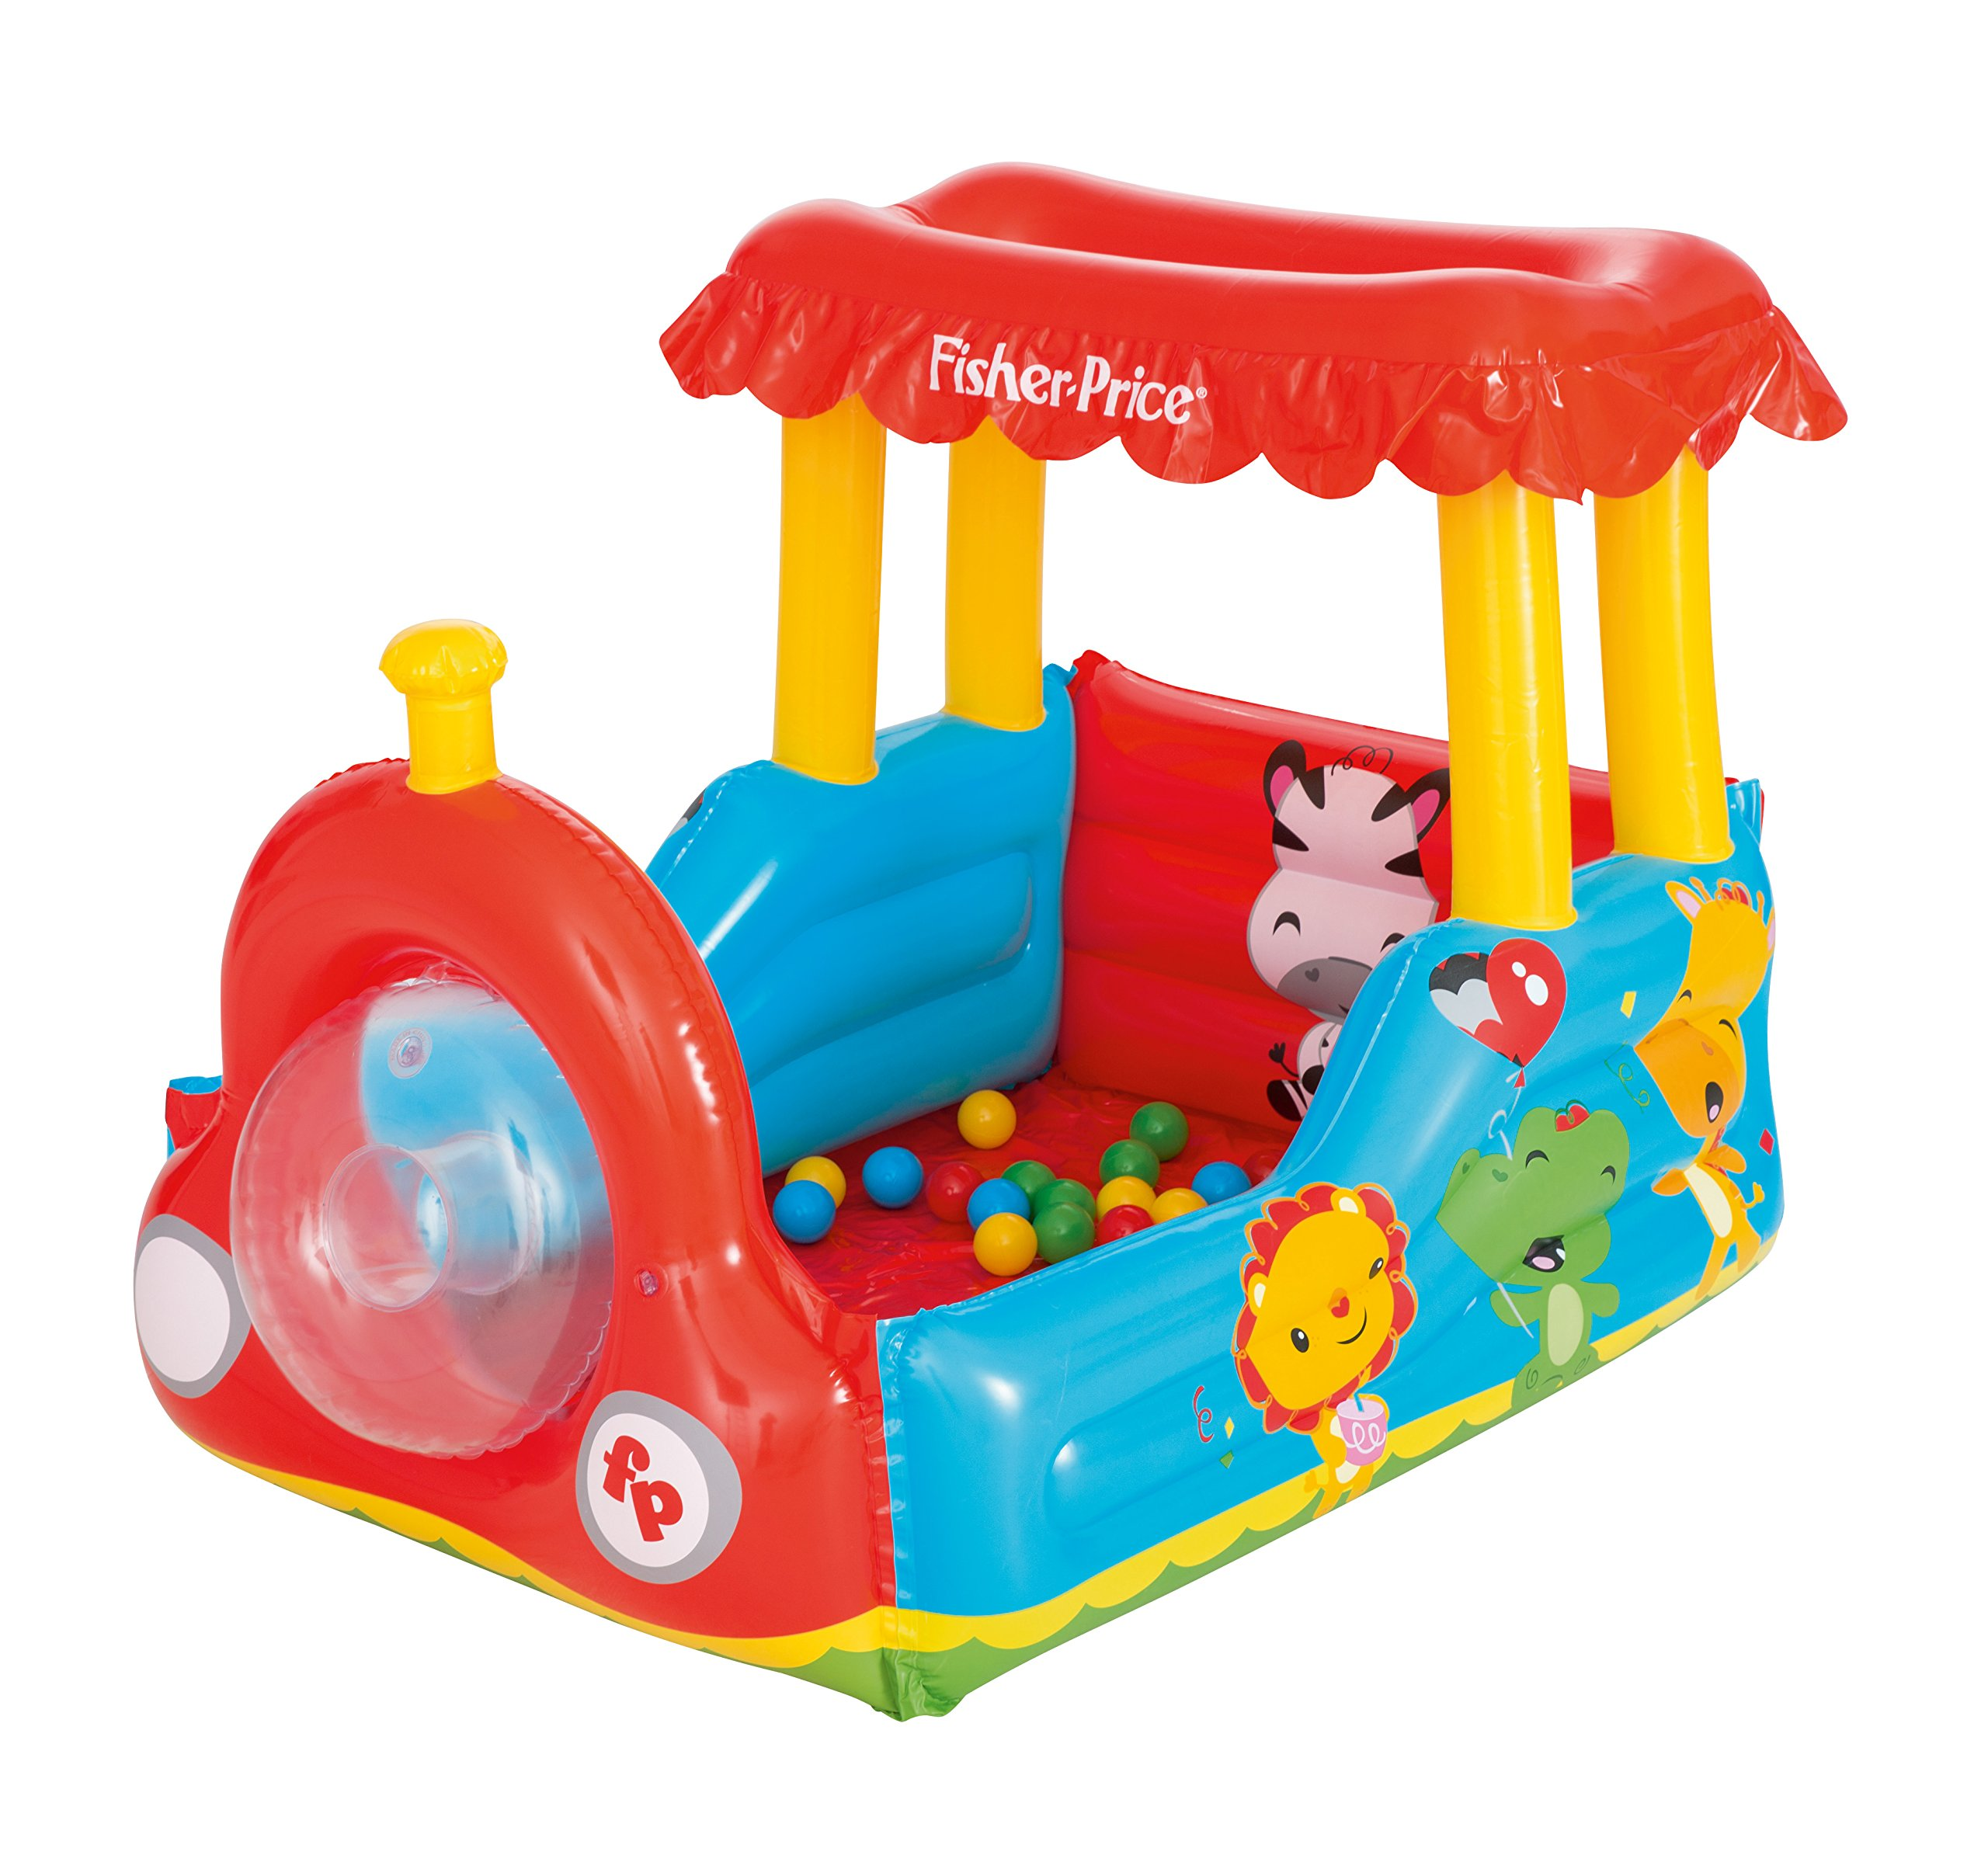 Bestway 93503 - Piscina de Bolas Hinchable Fisher Price Tren ...